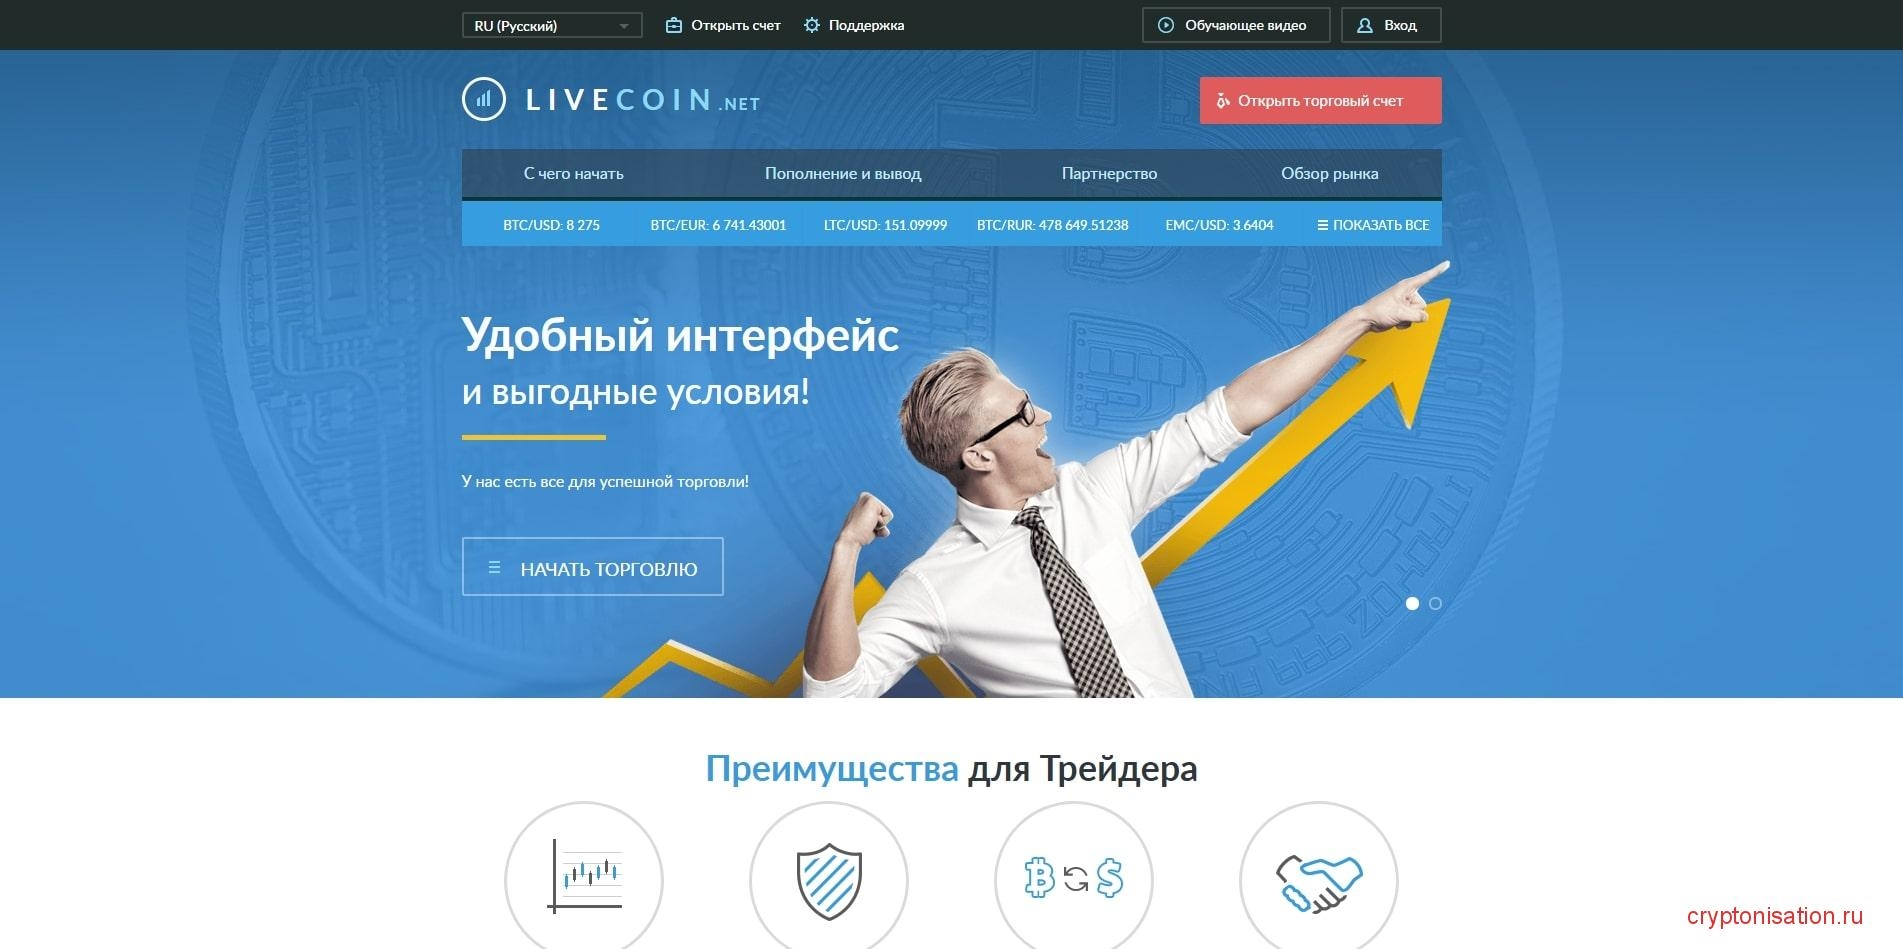 After alleged hack, Russian crypto exchange Livecoin shuts down – securebitcoinnews